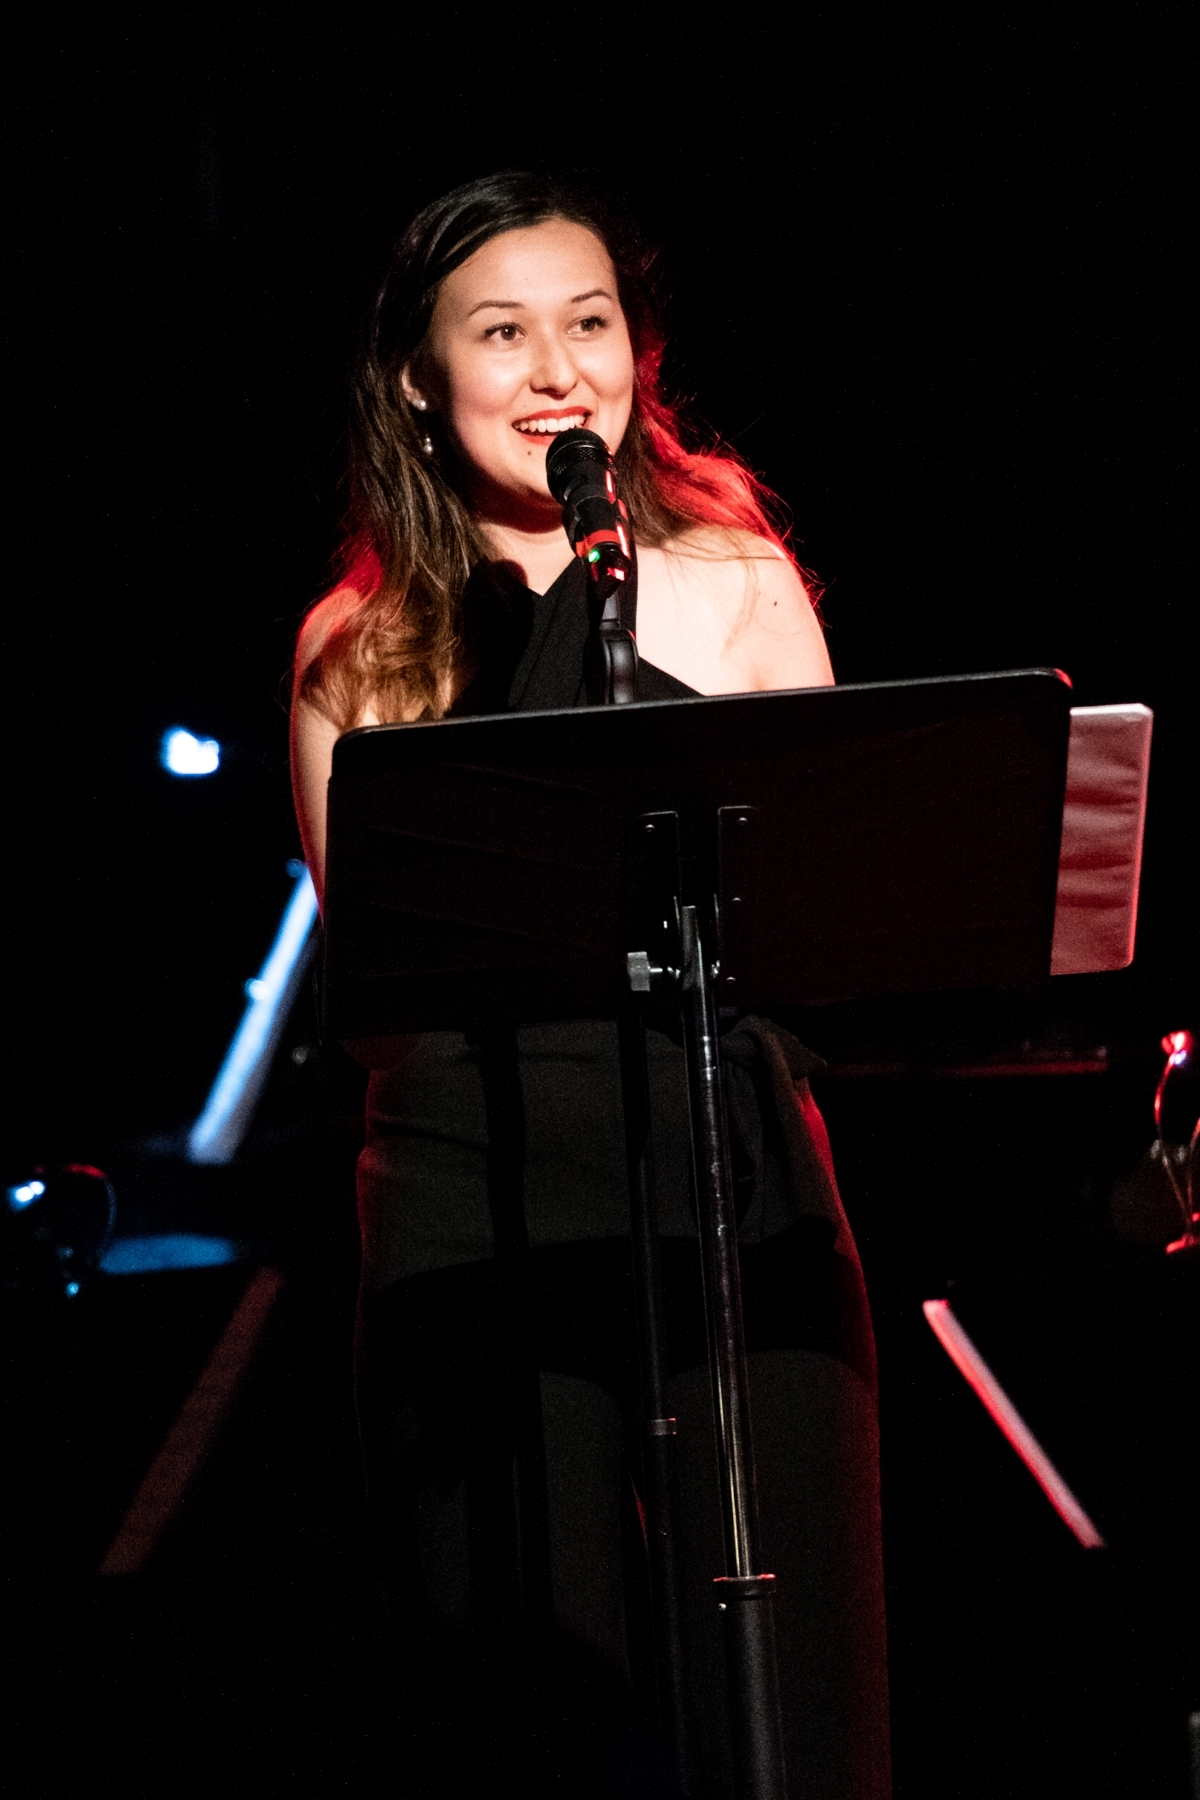 Performing at NYMF Concert